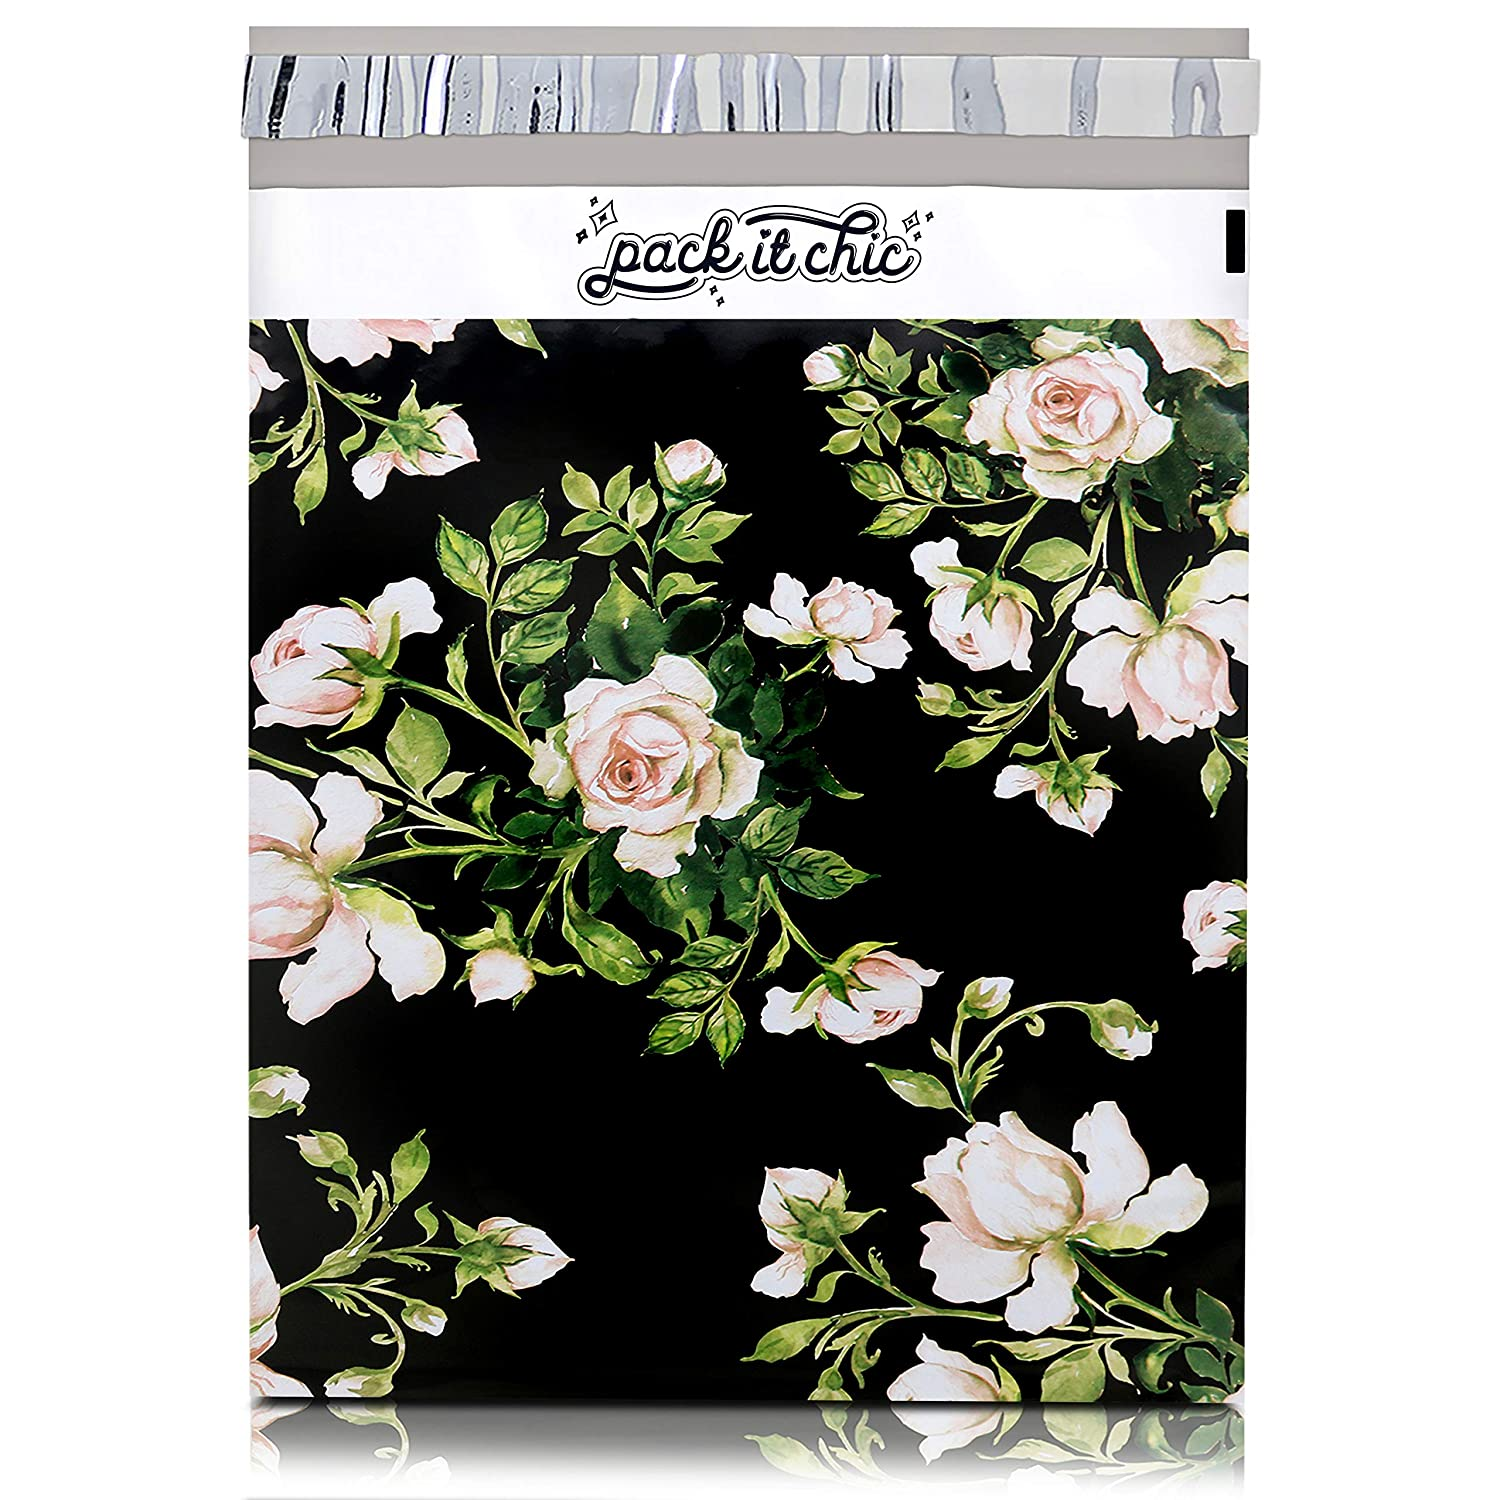 Pack It Chic - 10X13 (100 Pack) Floral Pattern Poly Mailer Envelope Plastic Custom Mailing & Shipping Bags - Self Seal (More Designs Available)